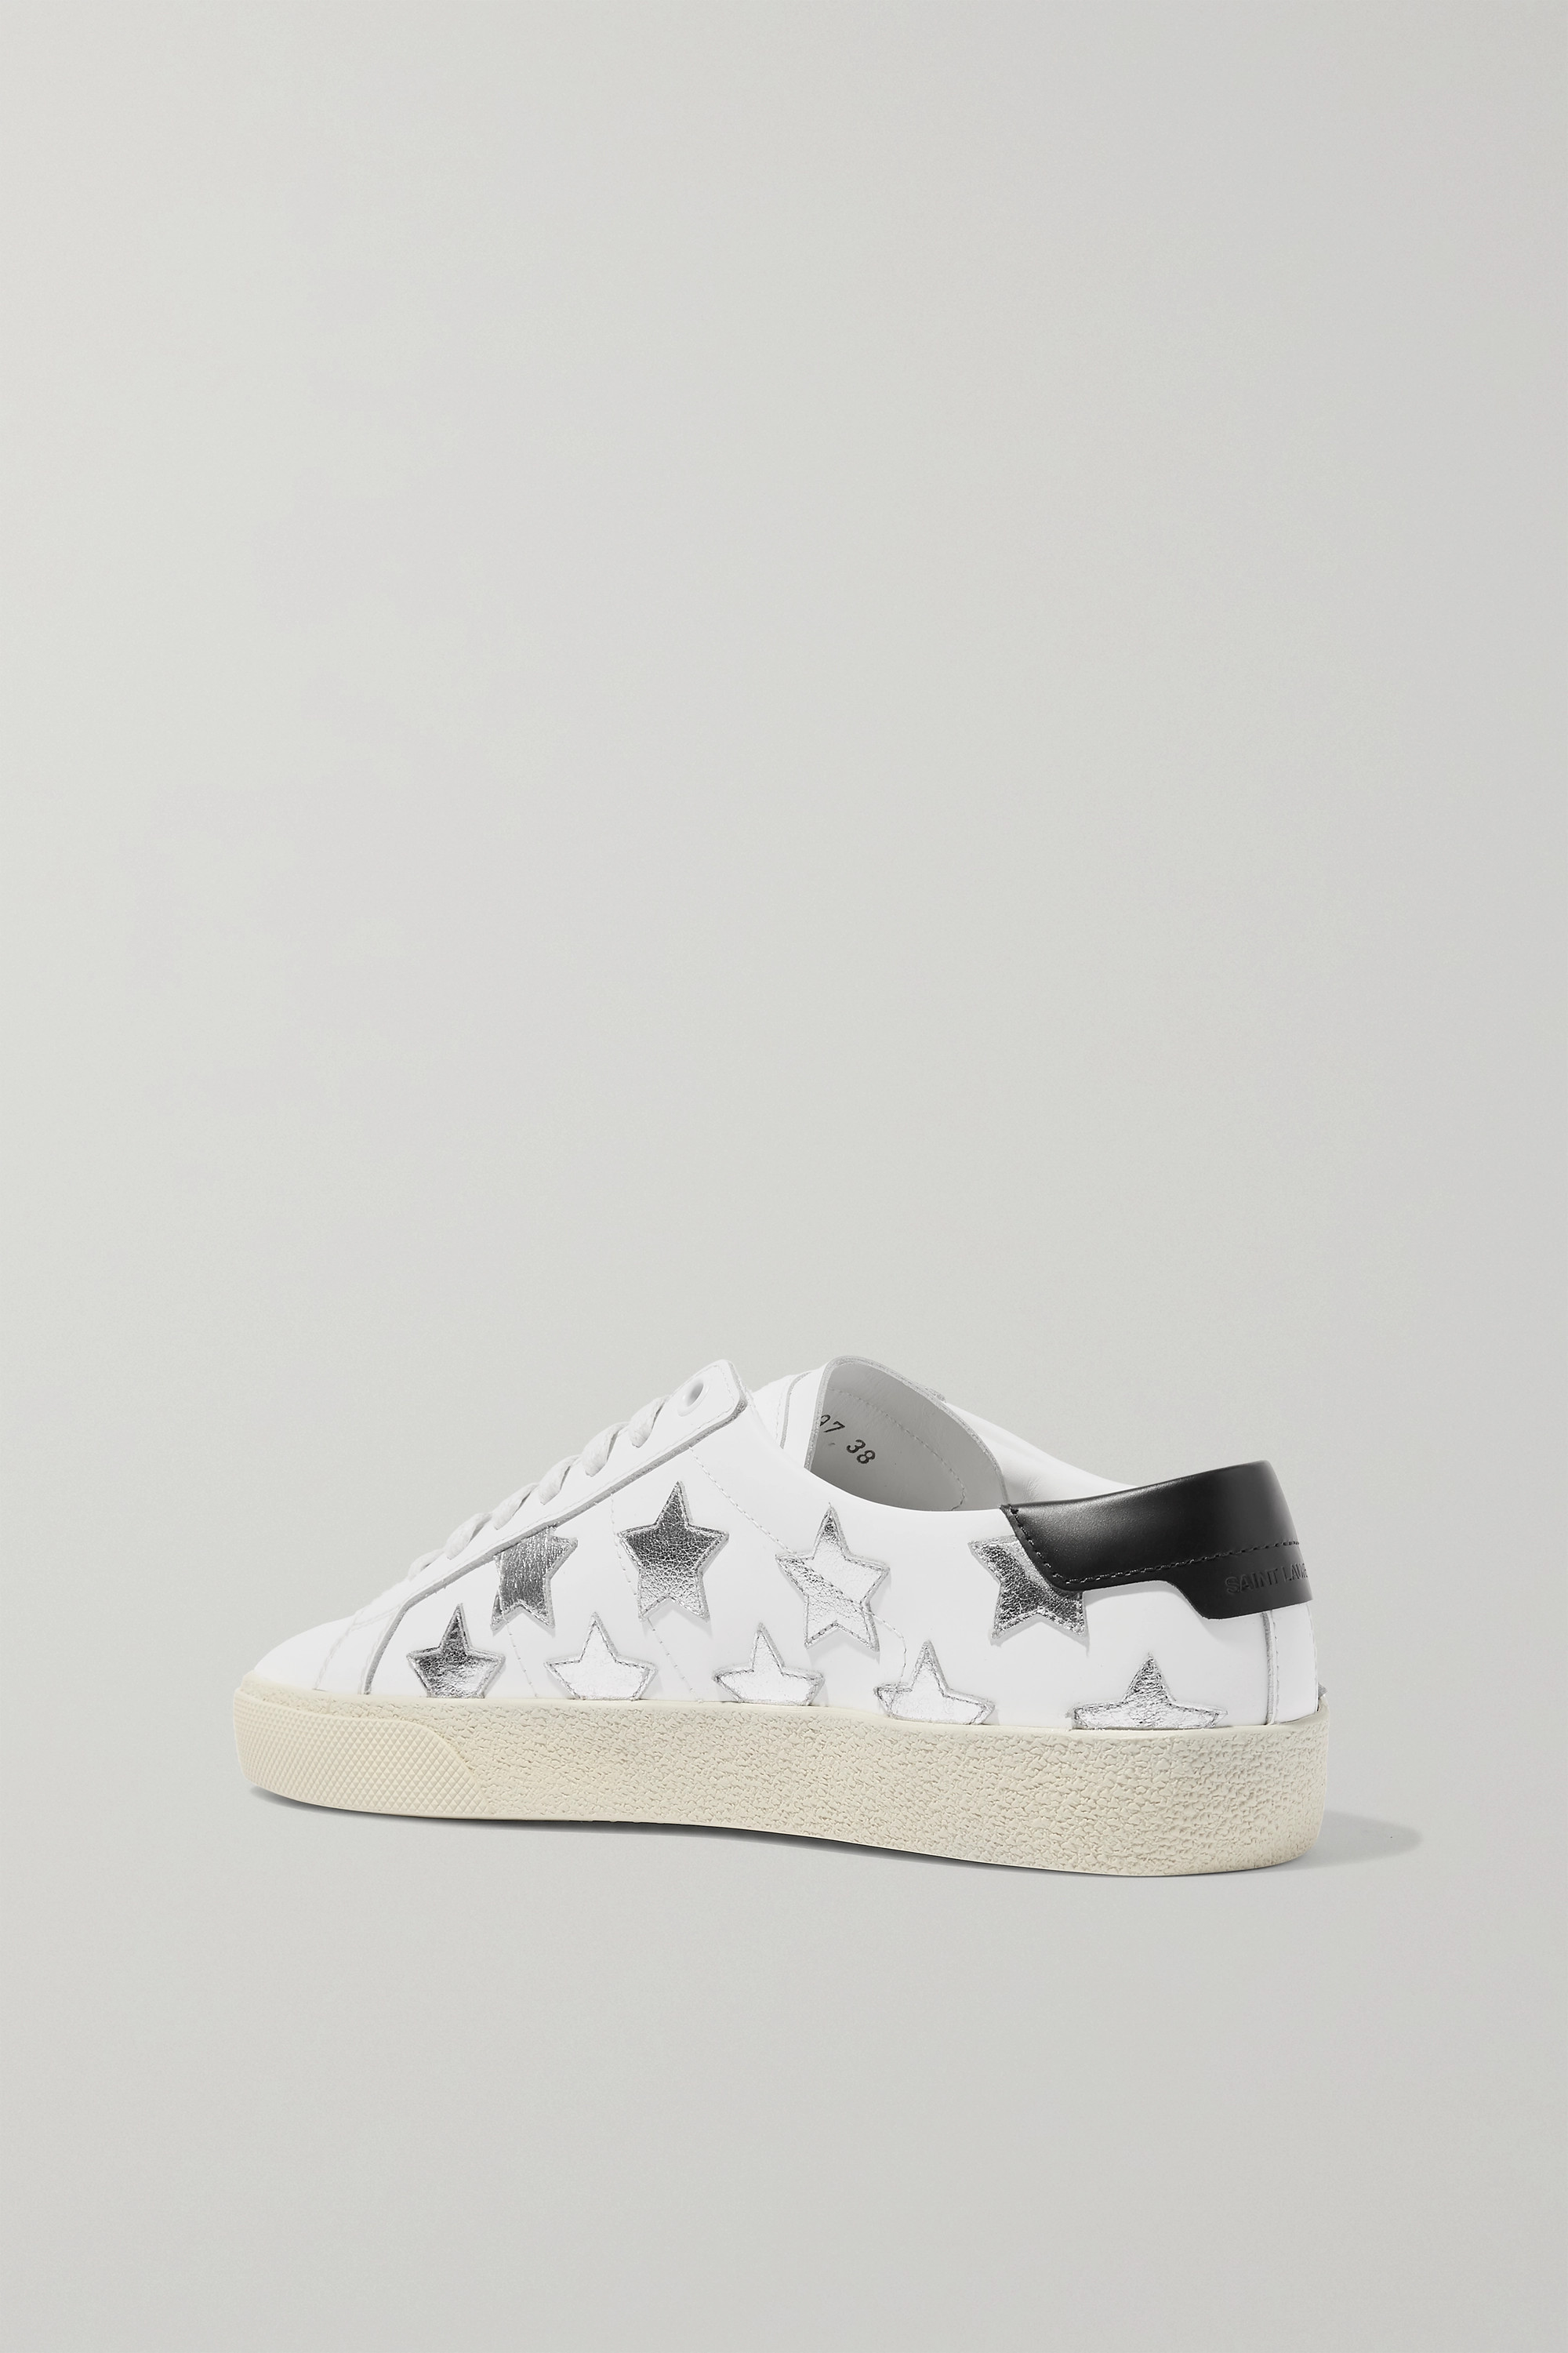 SAINT LAURENT Court Classic Sneakers aus Leder mit Metallic-Applikationen